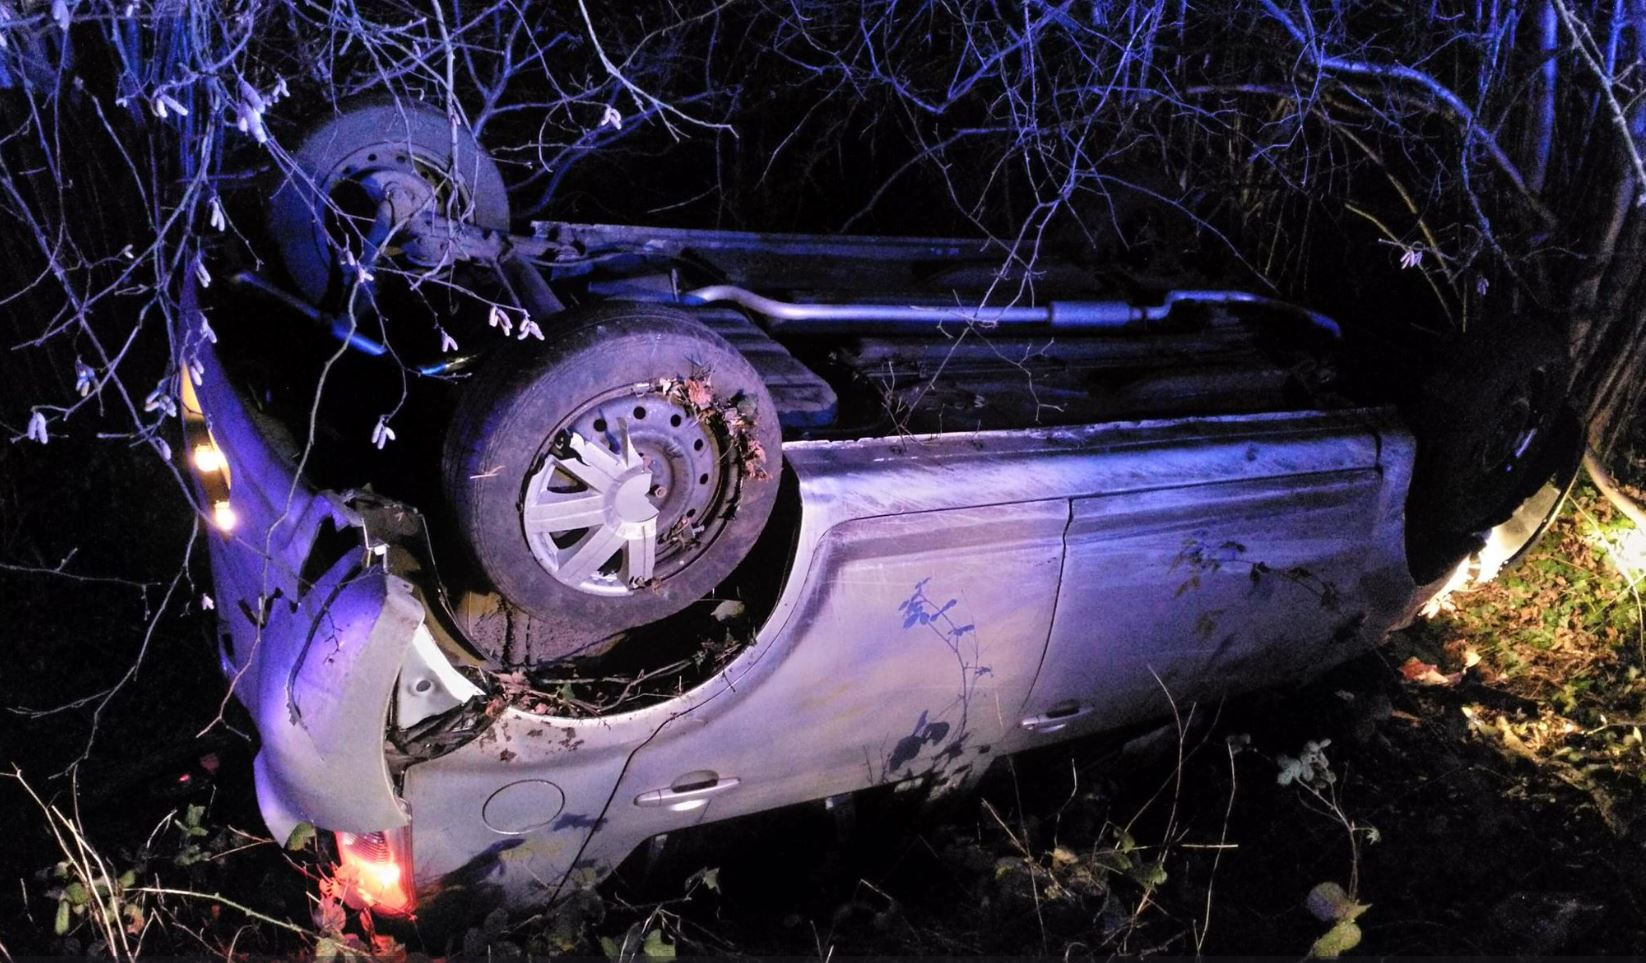 The driver was lucky to escape with no injuries